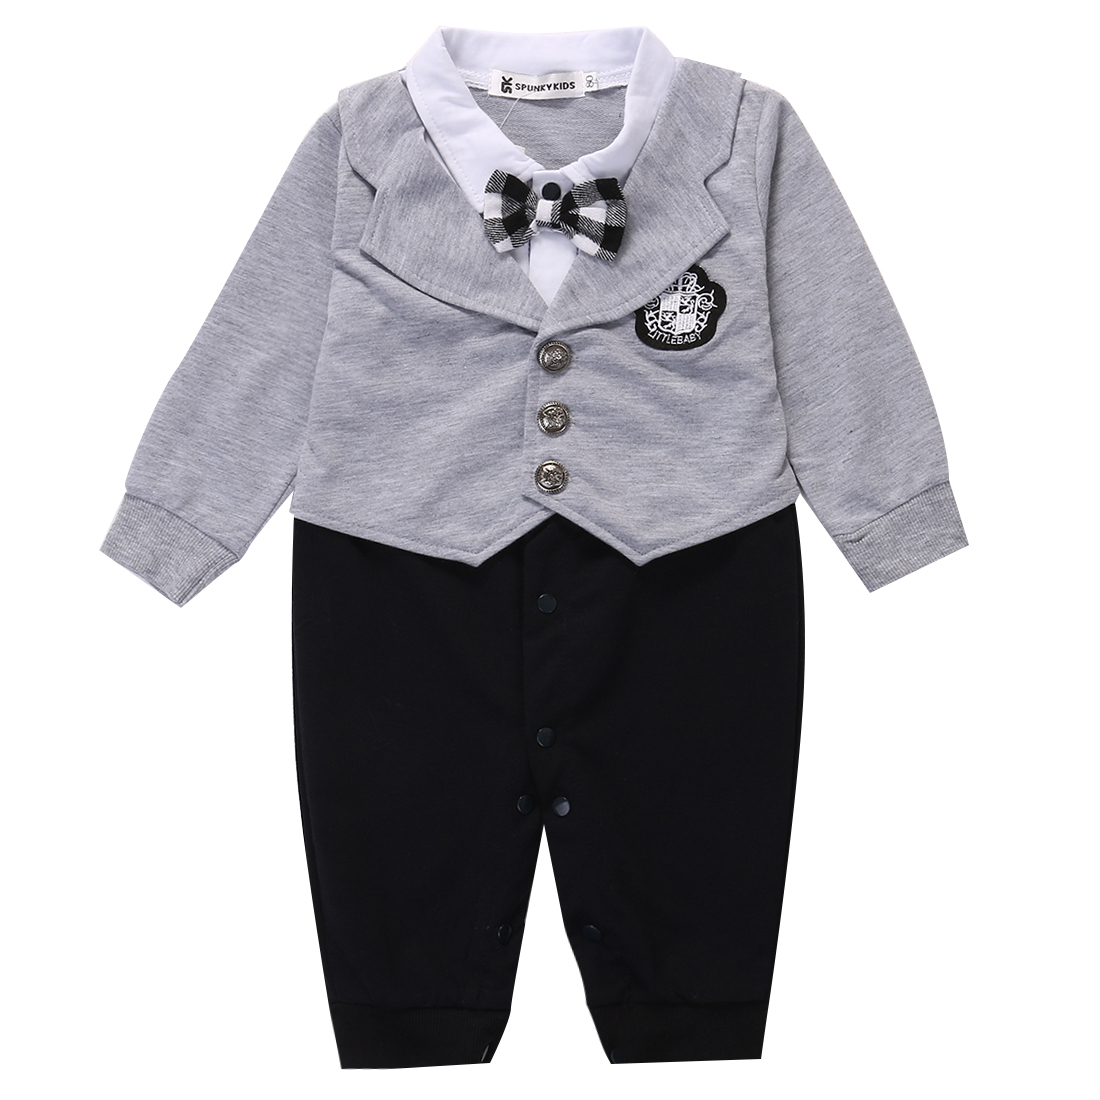 1Pcs Kid Infant Toddler Newborn Baby Boy Cotton Gentleman Romper Jumpsuit Formal Clothes Outfit 0-24M spring baby romper infant boy bear romper newborn hooded animal clothes toddler cute panda romper kid girl jumpsuit baby costume